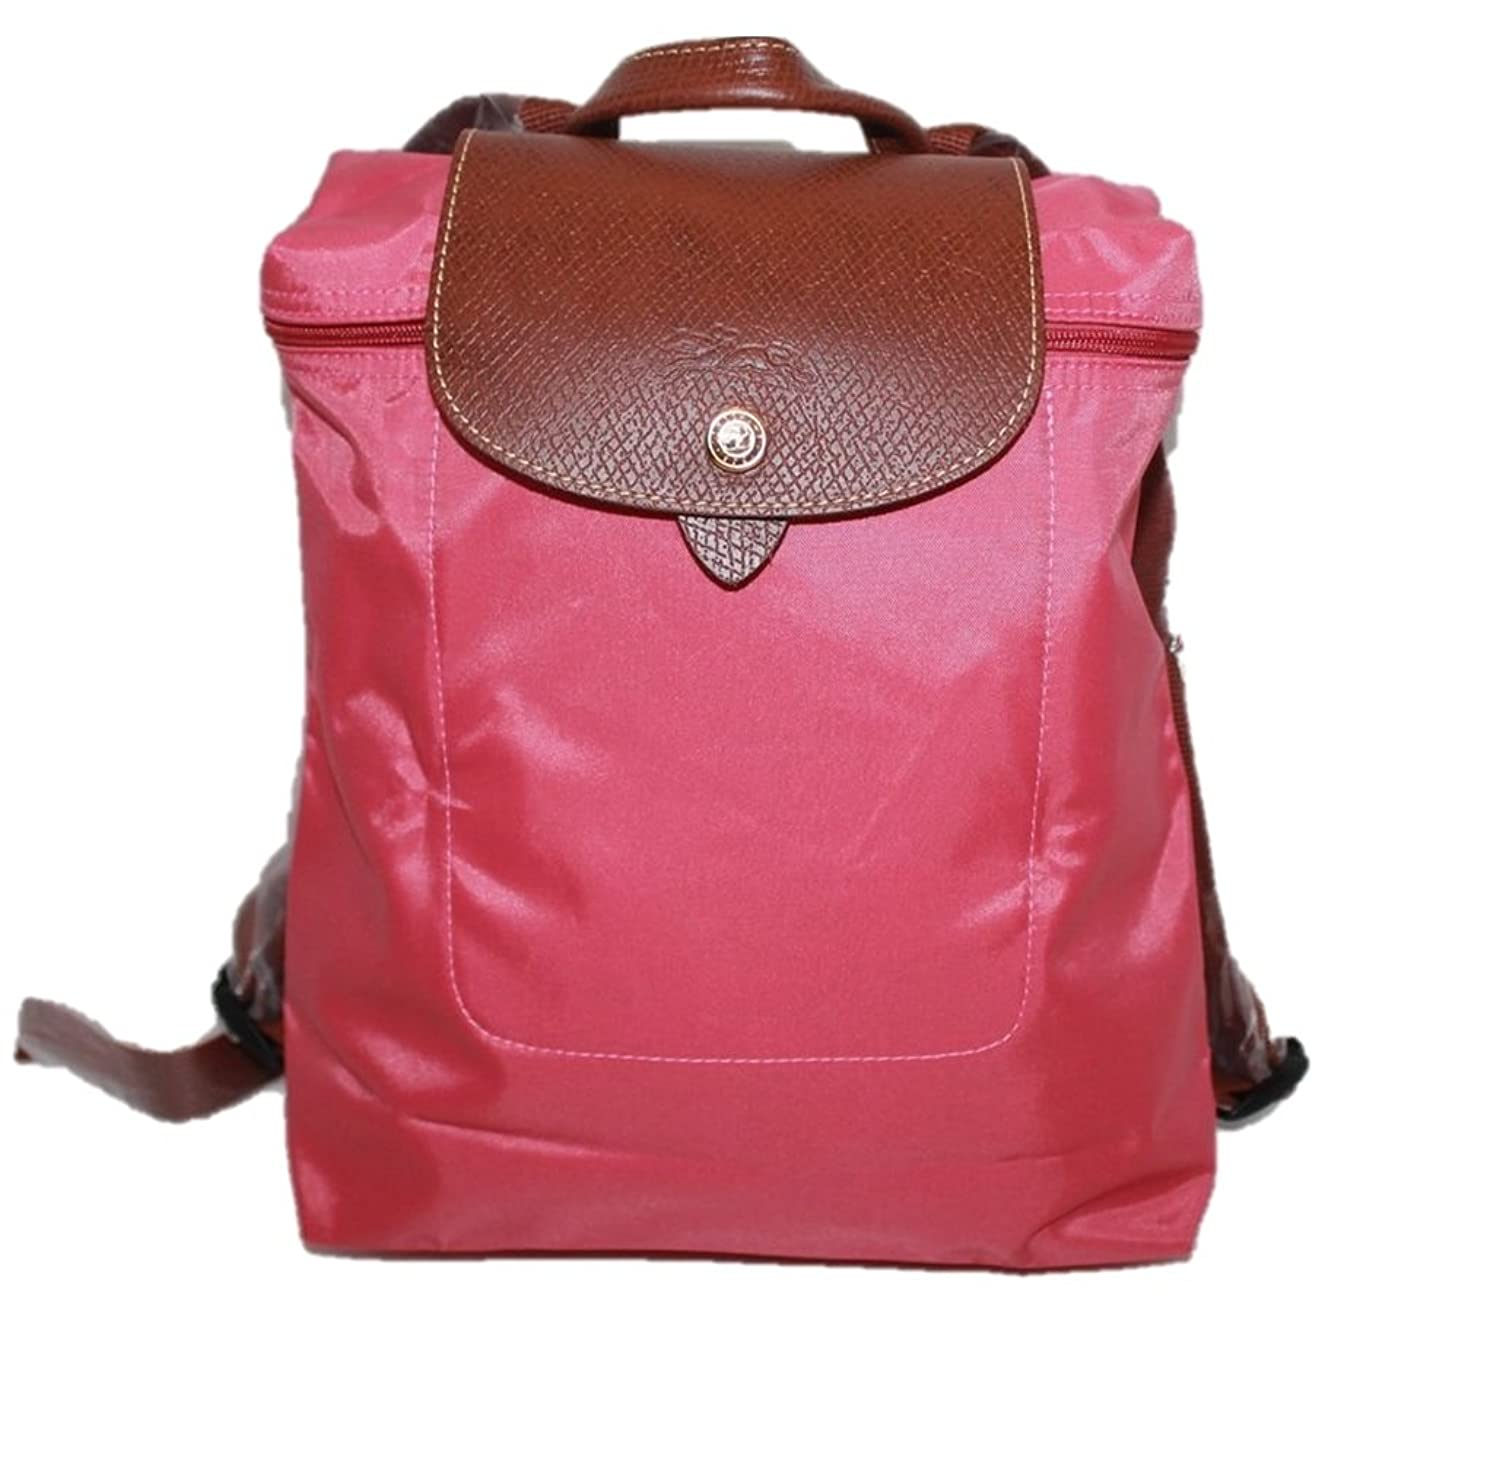 Longchamp Lid Backpack - Le Pliage, Malabar Pink